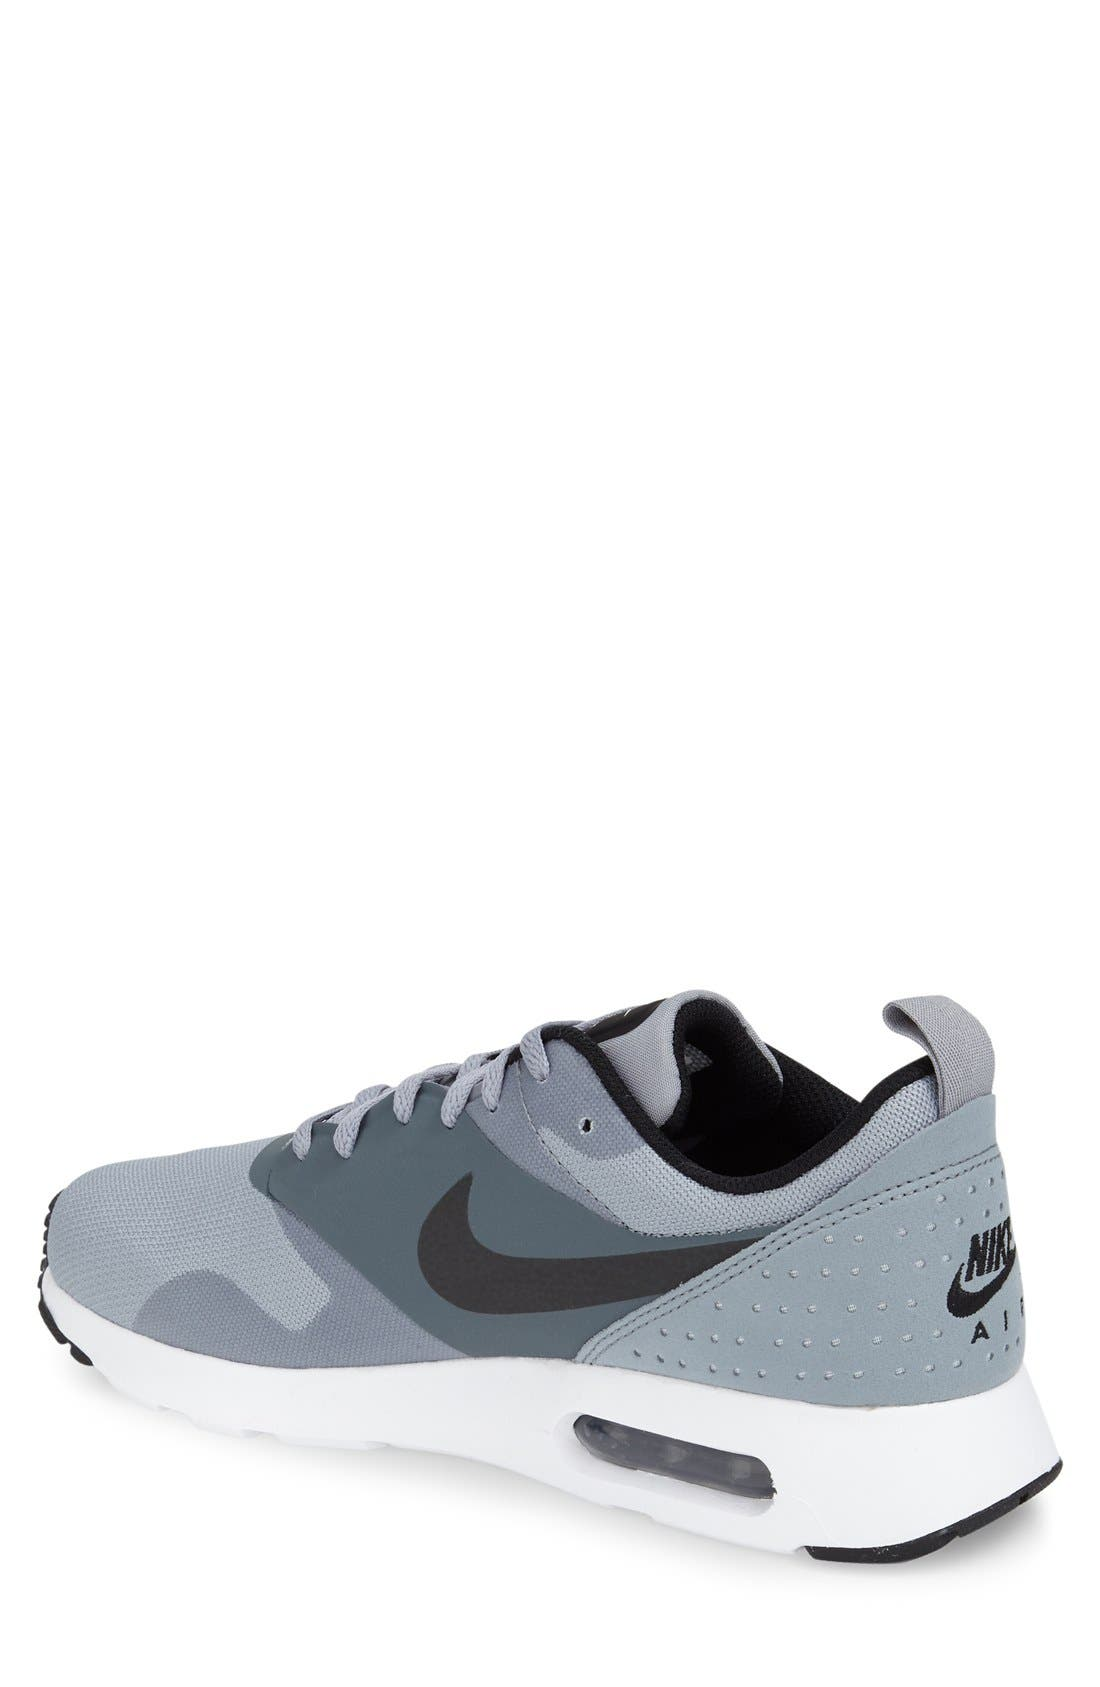 ,                             'Air Max Tavas' Sneaker,                             Alternate thumbnail 118, color,                             081